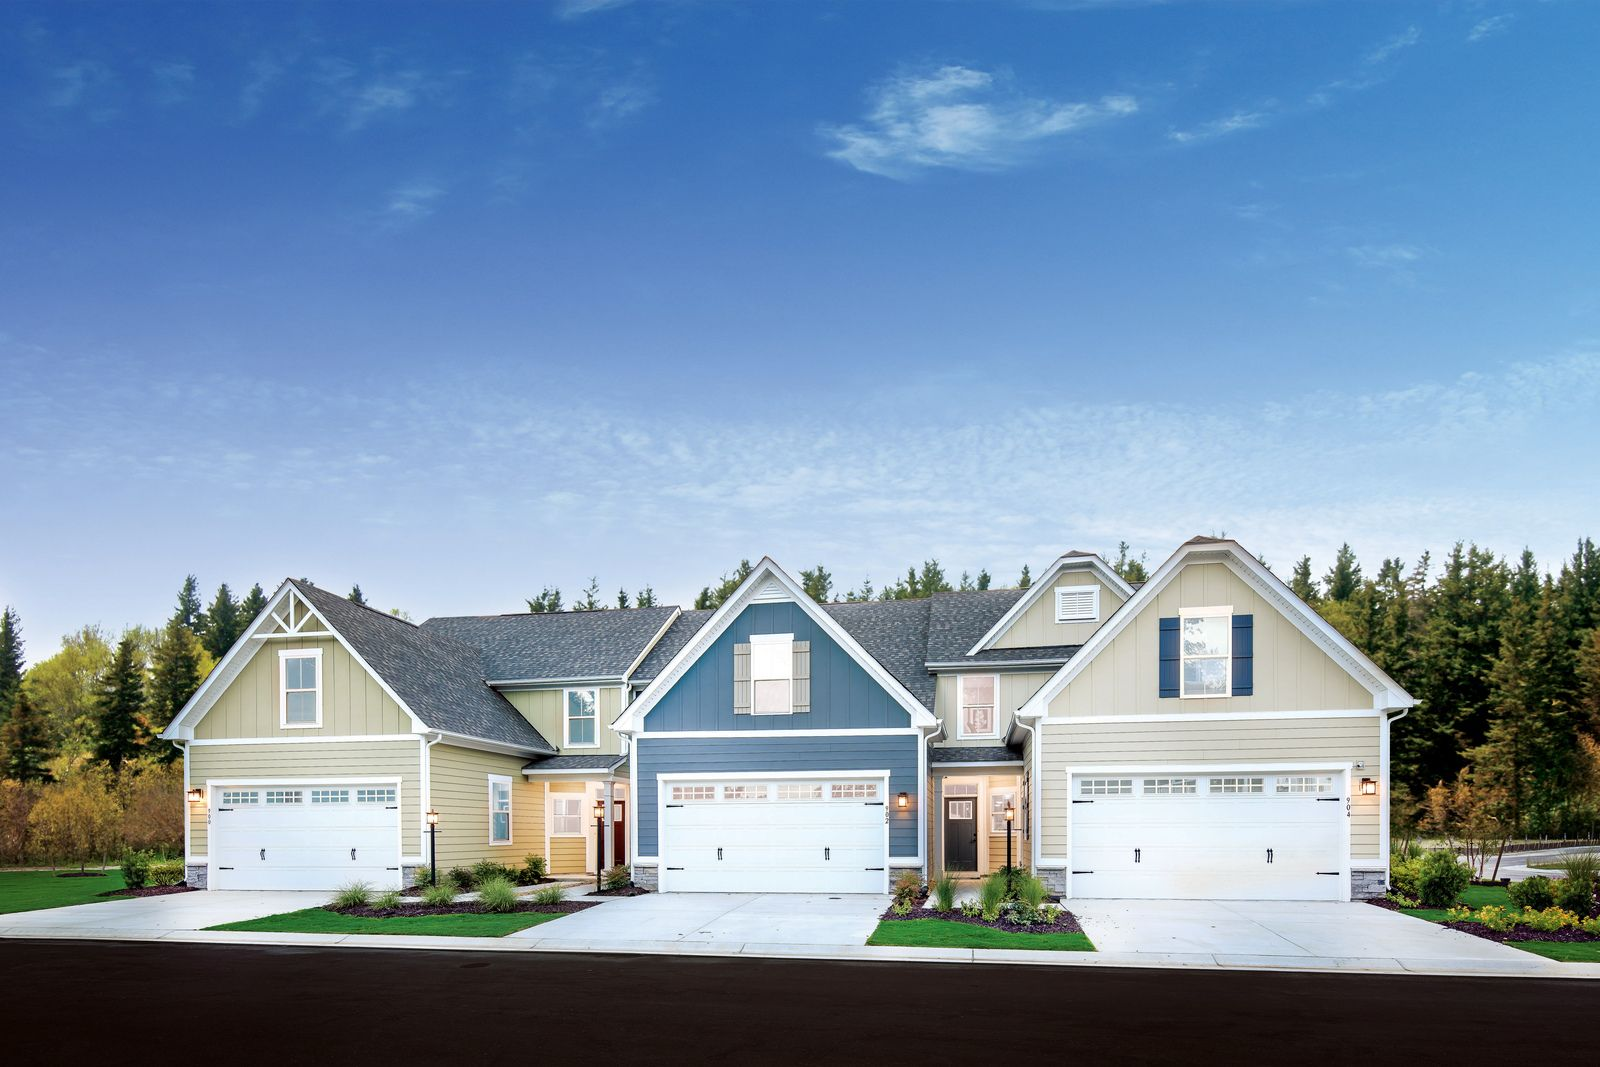 VILLAS AT PORT ROYAL - COMING SPRING 2021:New townhomes featuring 1- & 2-car garages, modern, open concepts, private backyards, & master-down options only 2 mi to Saturn Pkwy - all from the upper $200s.Join the VIP list today!